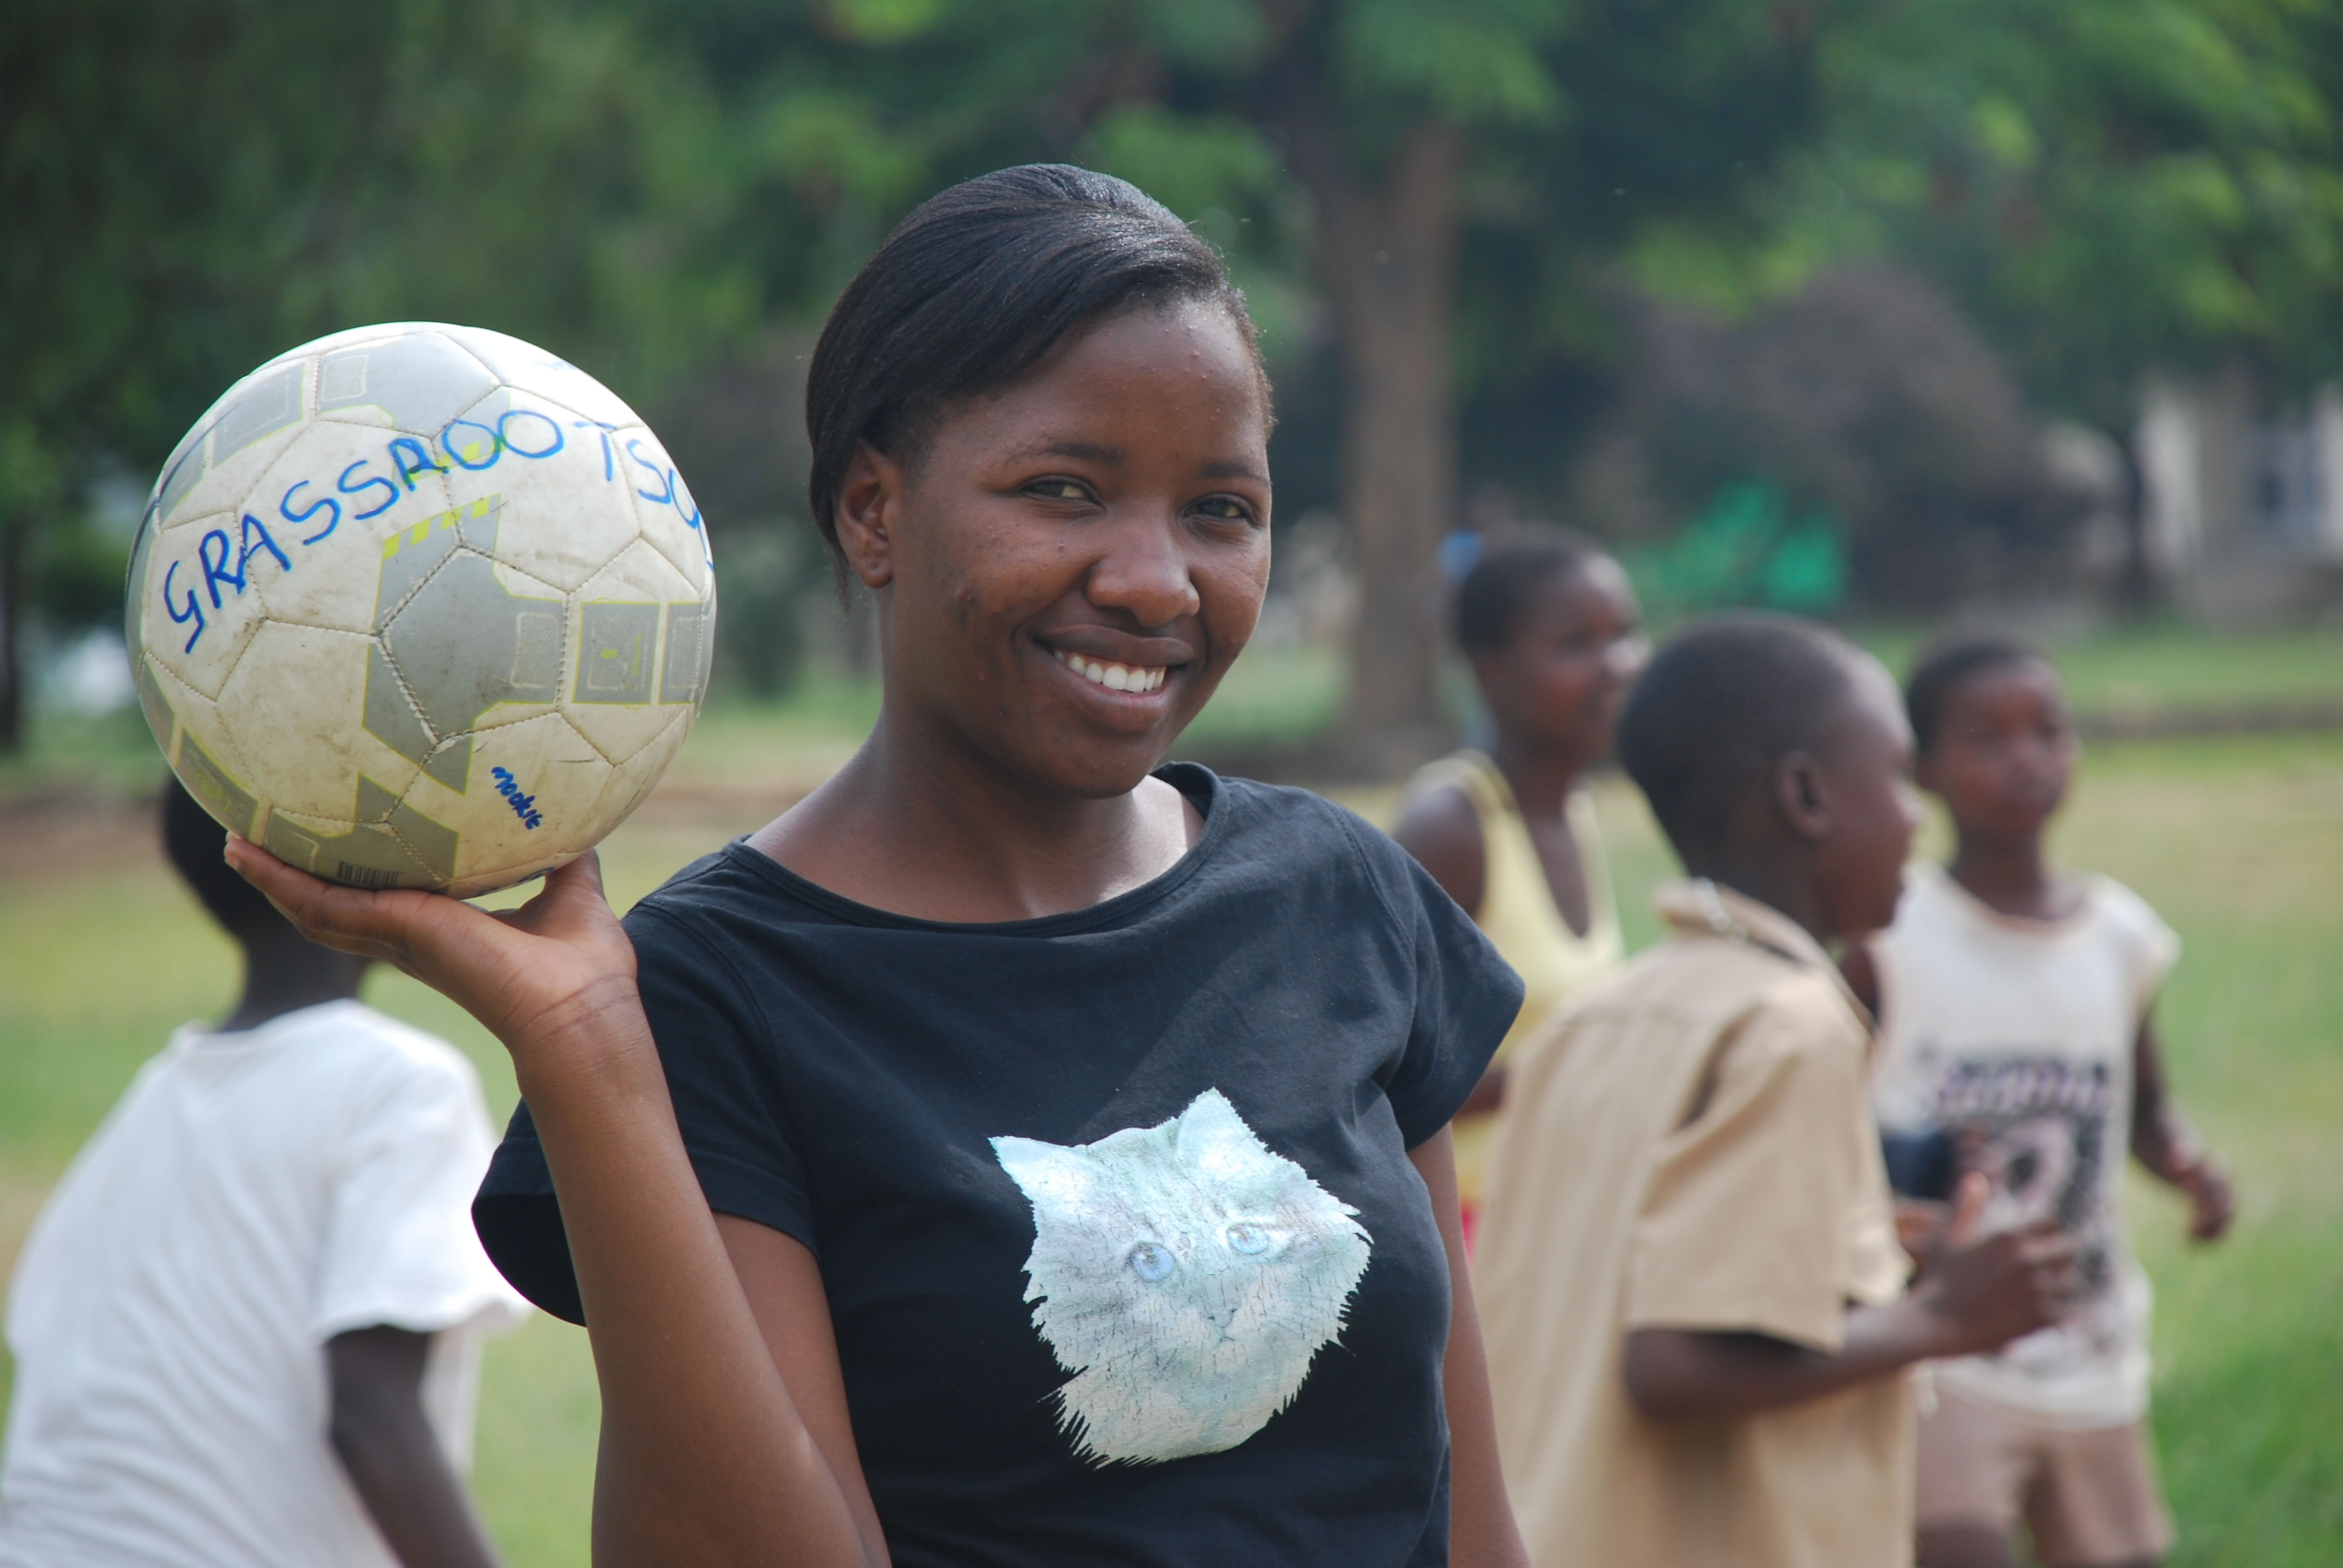 An orphan herself, Fortune helps other children learn about HIV through the Grassroots Soccer program.